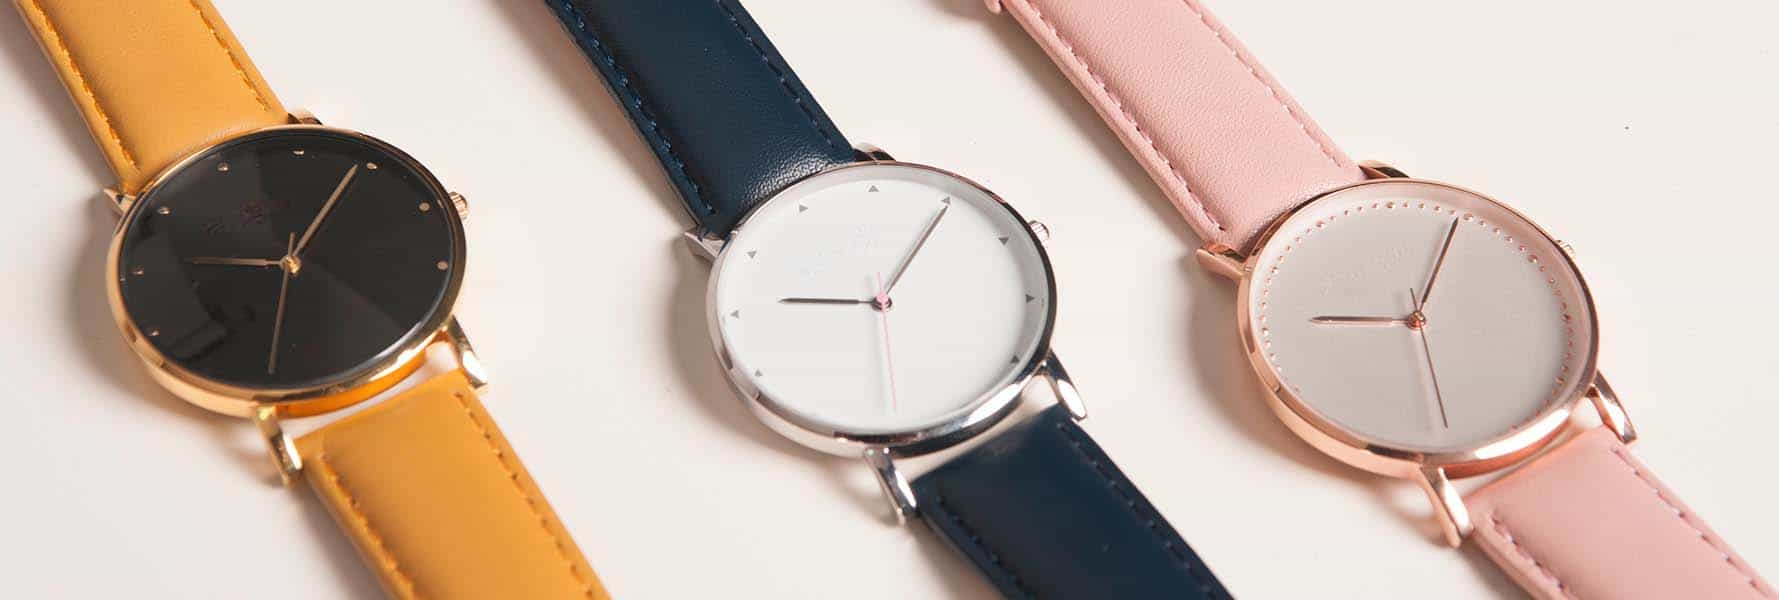 Best Waterproof Watches For Women 2018 – Rating and Reviews